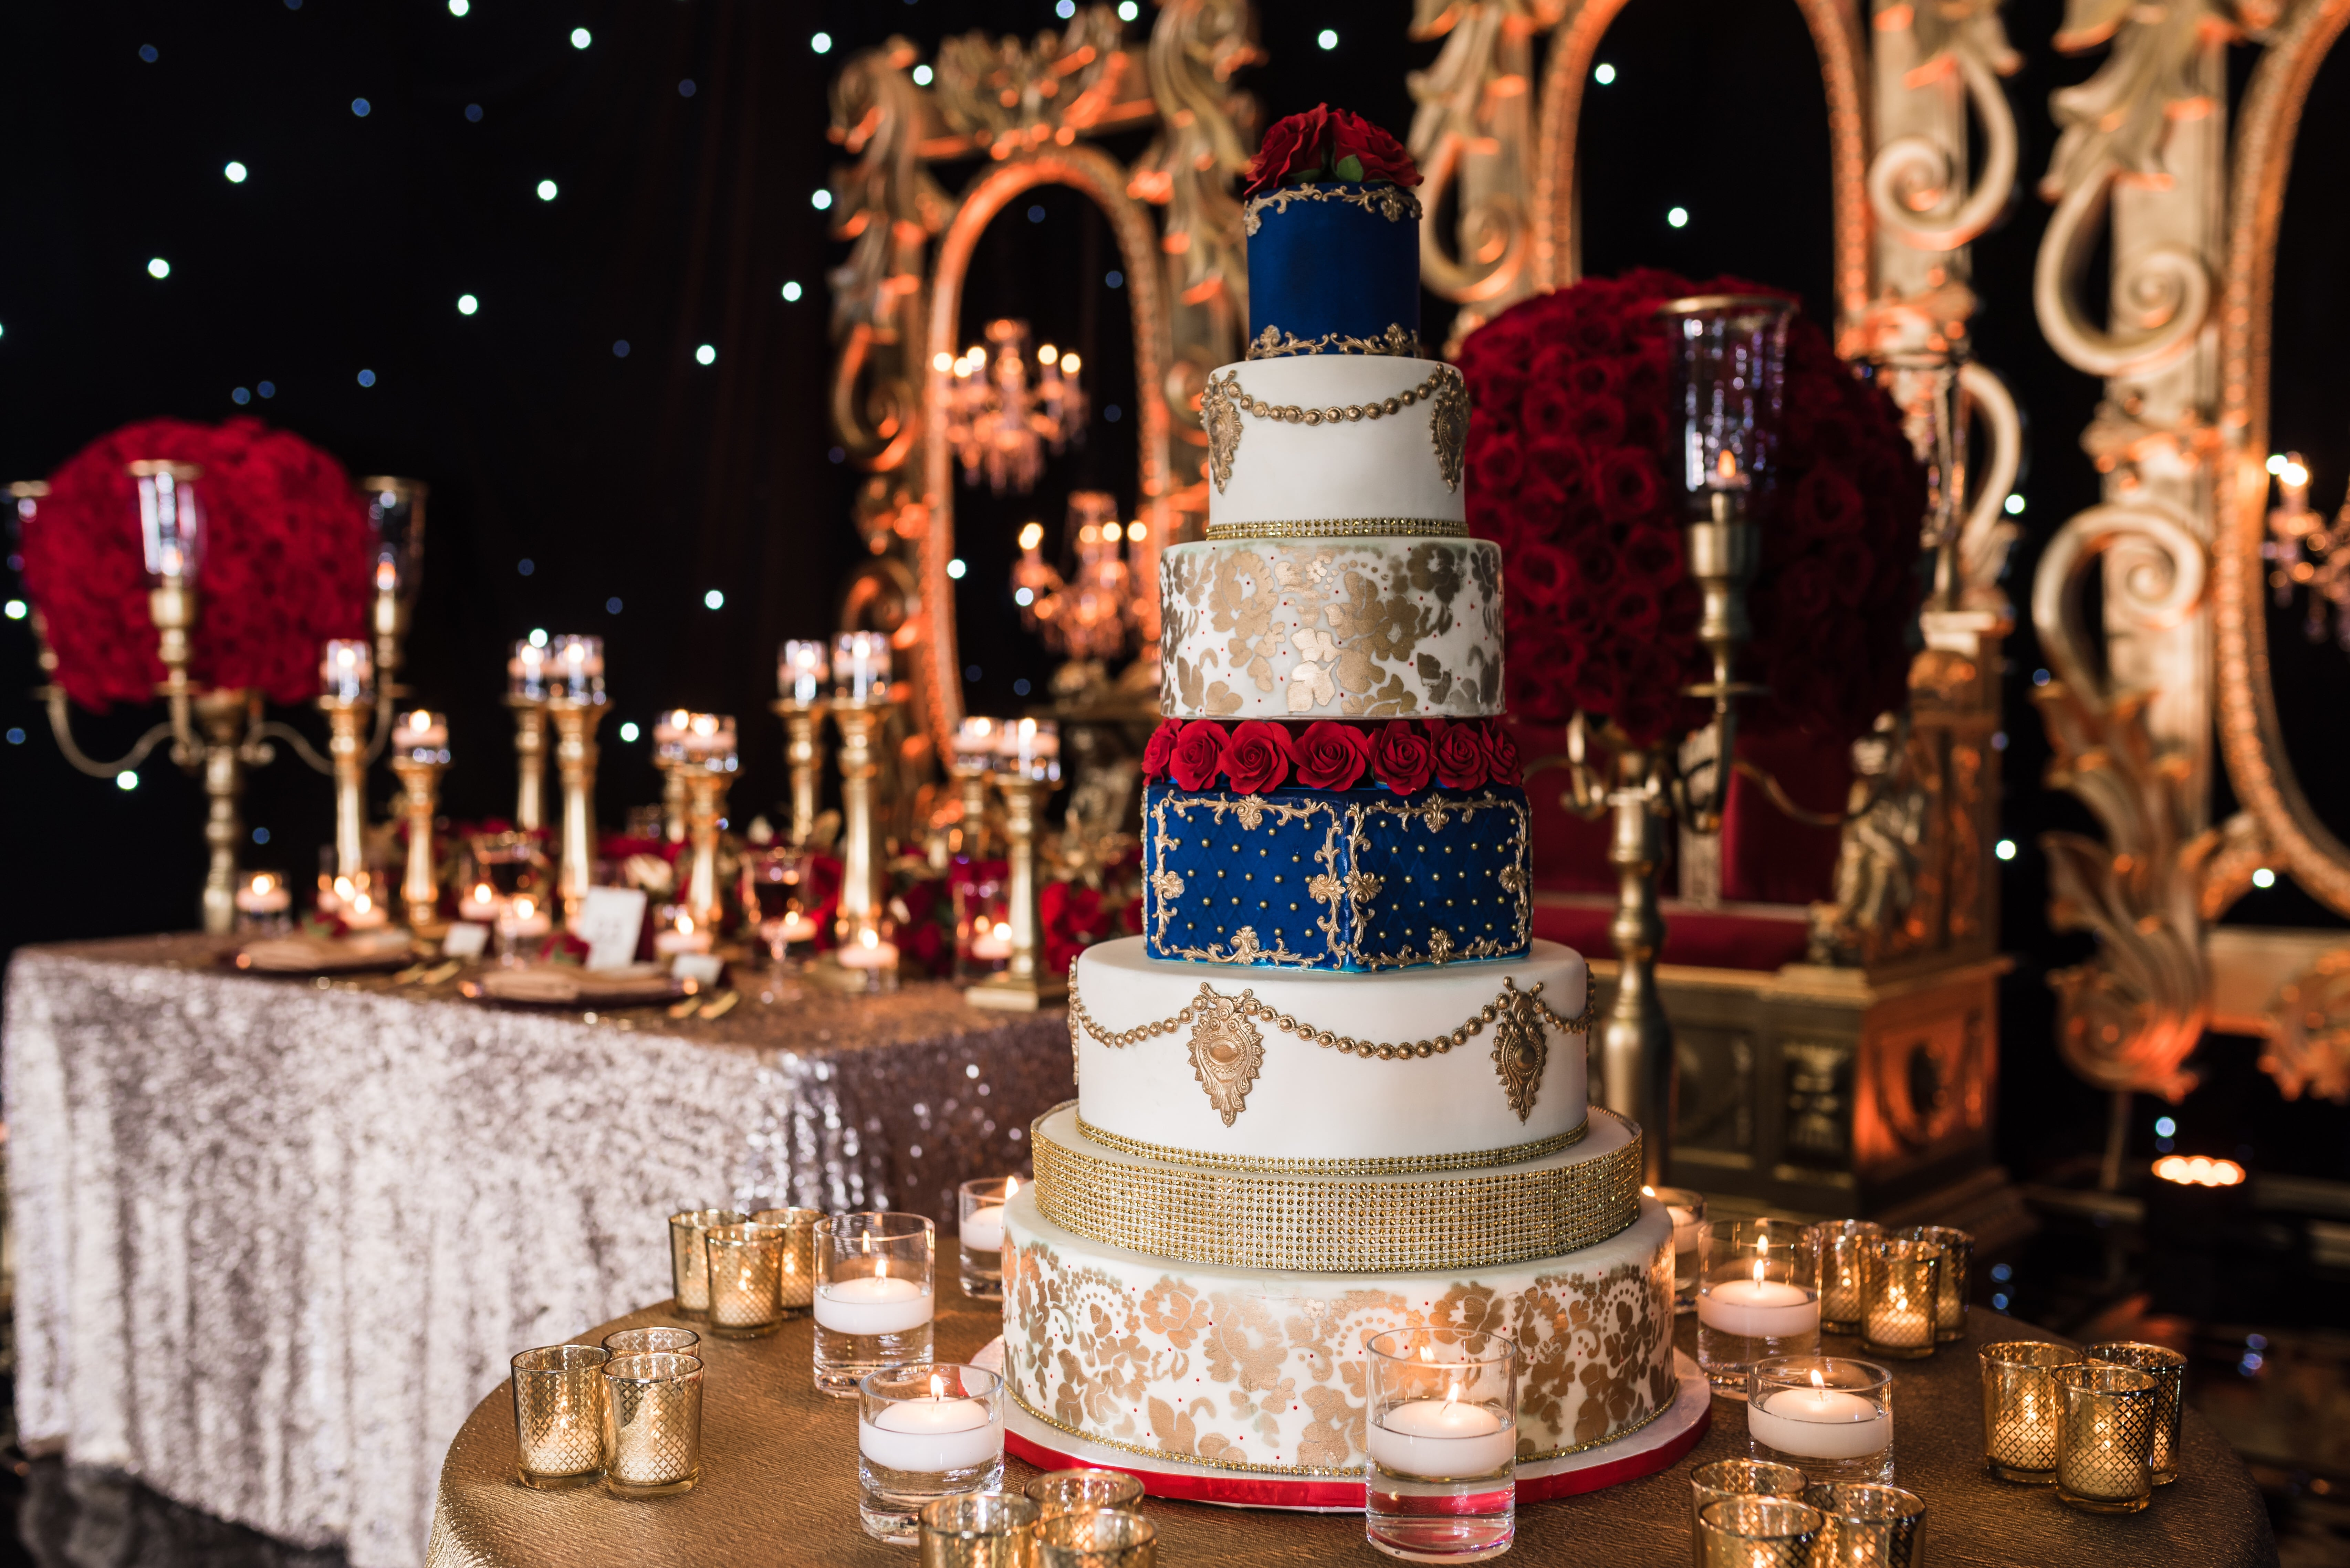 Beauty And The Beast Indian Wedding Styled Shoot For South Asian